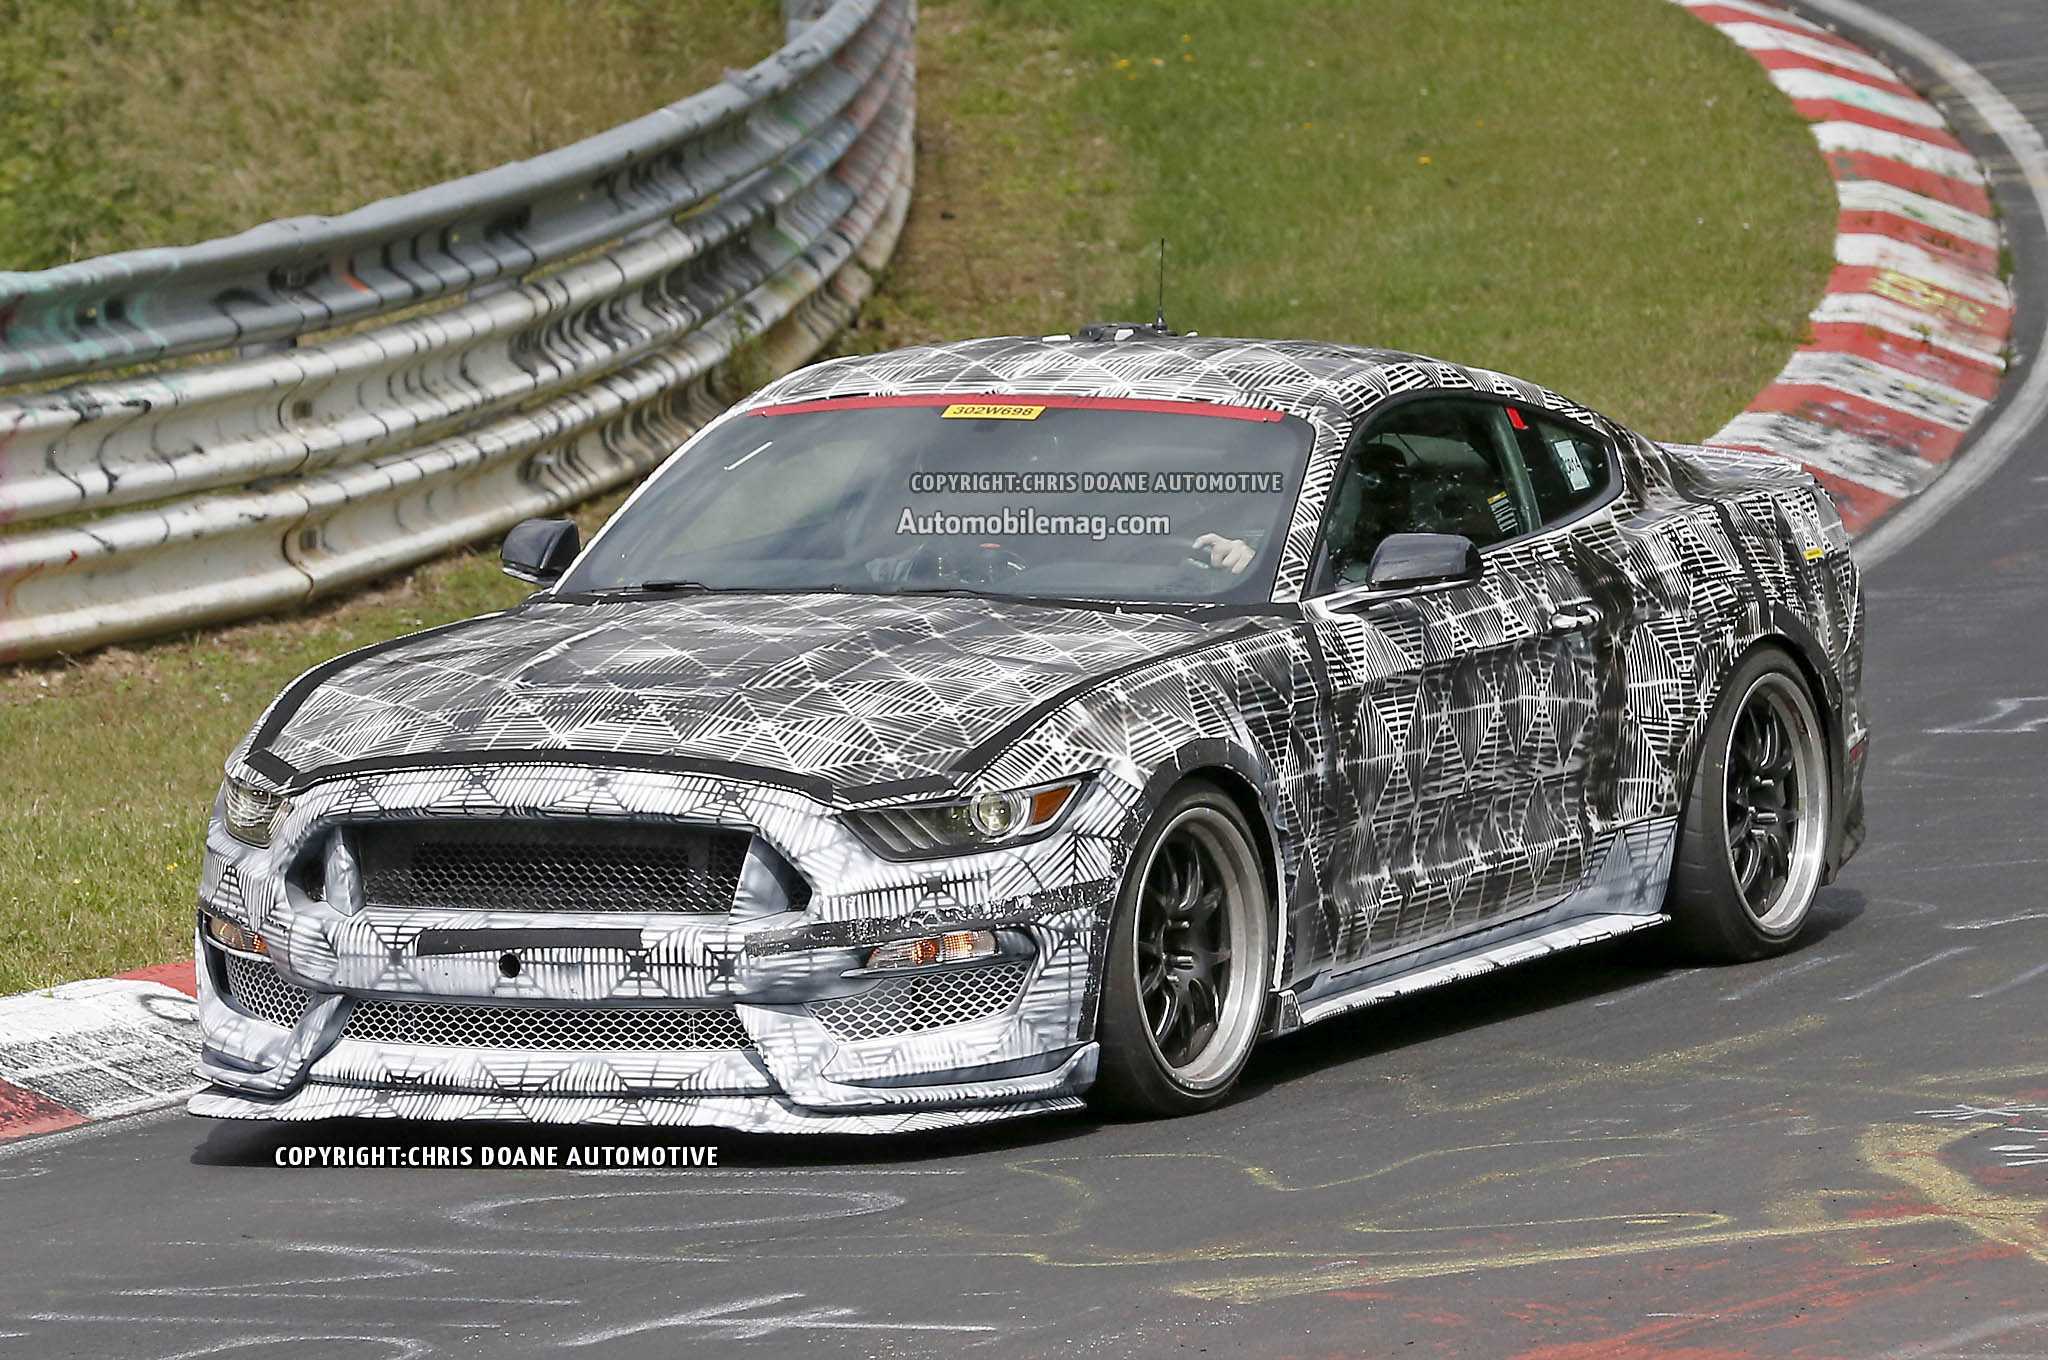 2016 Ford Mustang Svt Spied Nurburgring Front Three Quarters 031